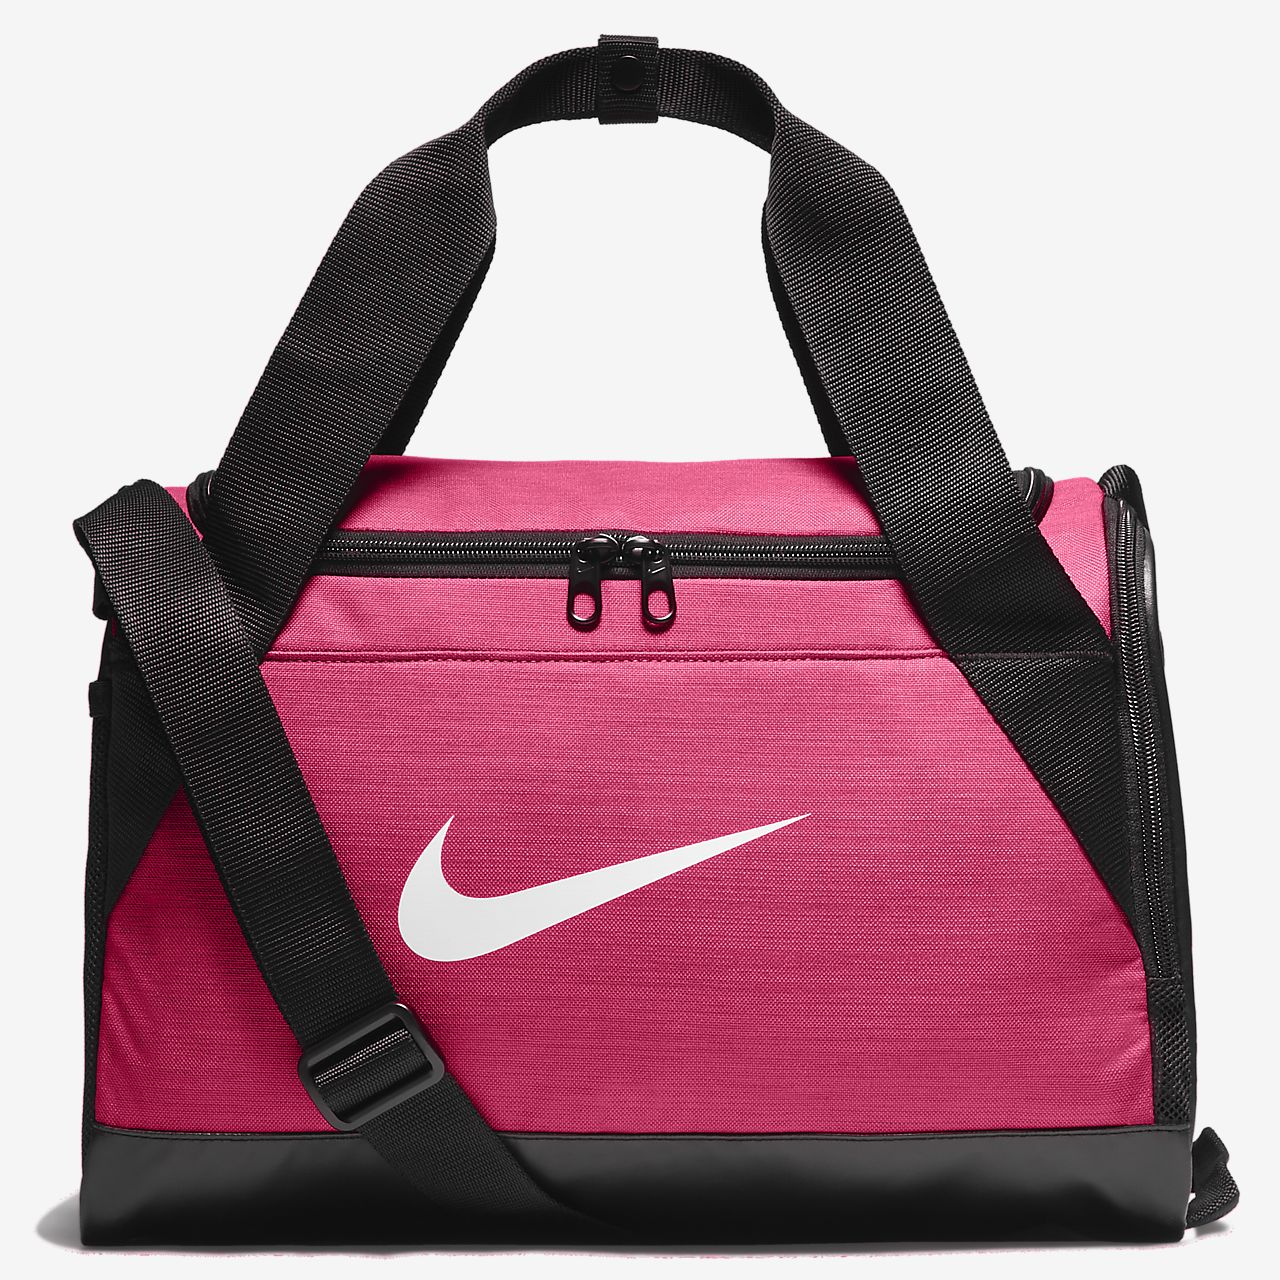 61038f081c0b Nike Brasilia (Extra Small) Training Duffel Bag. Nike.com GB